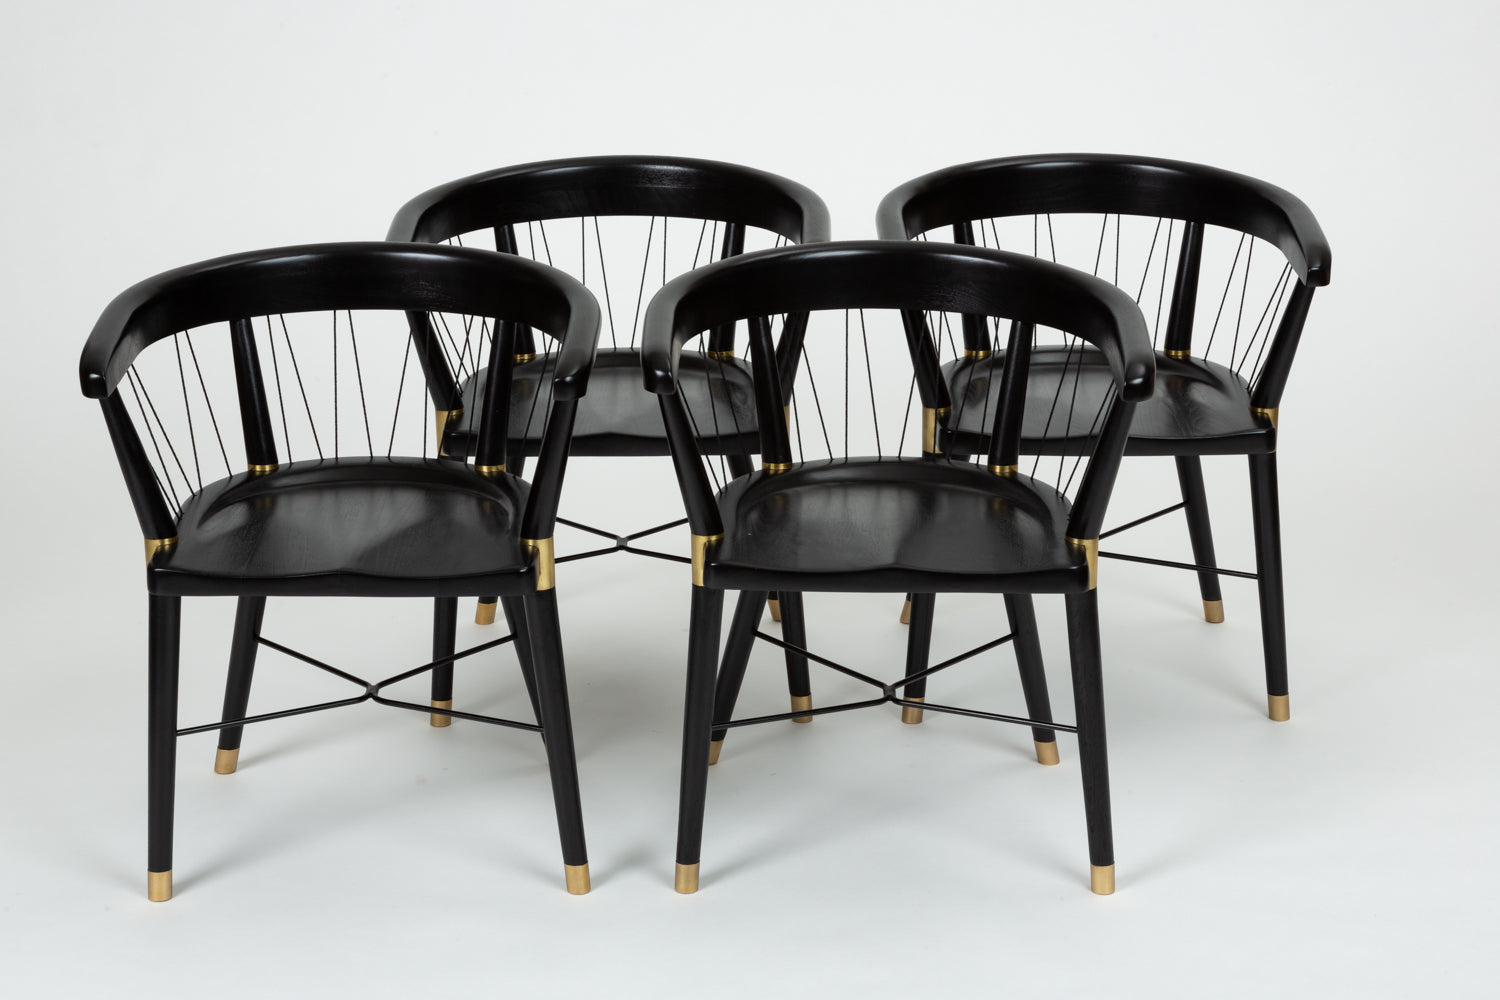 Set of 8 Ebonized Dining Chairs with String